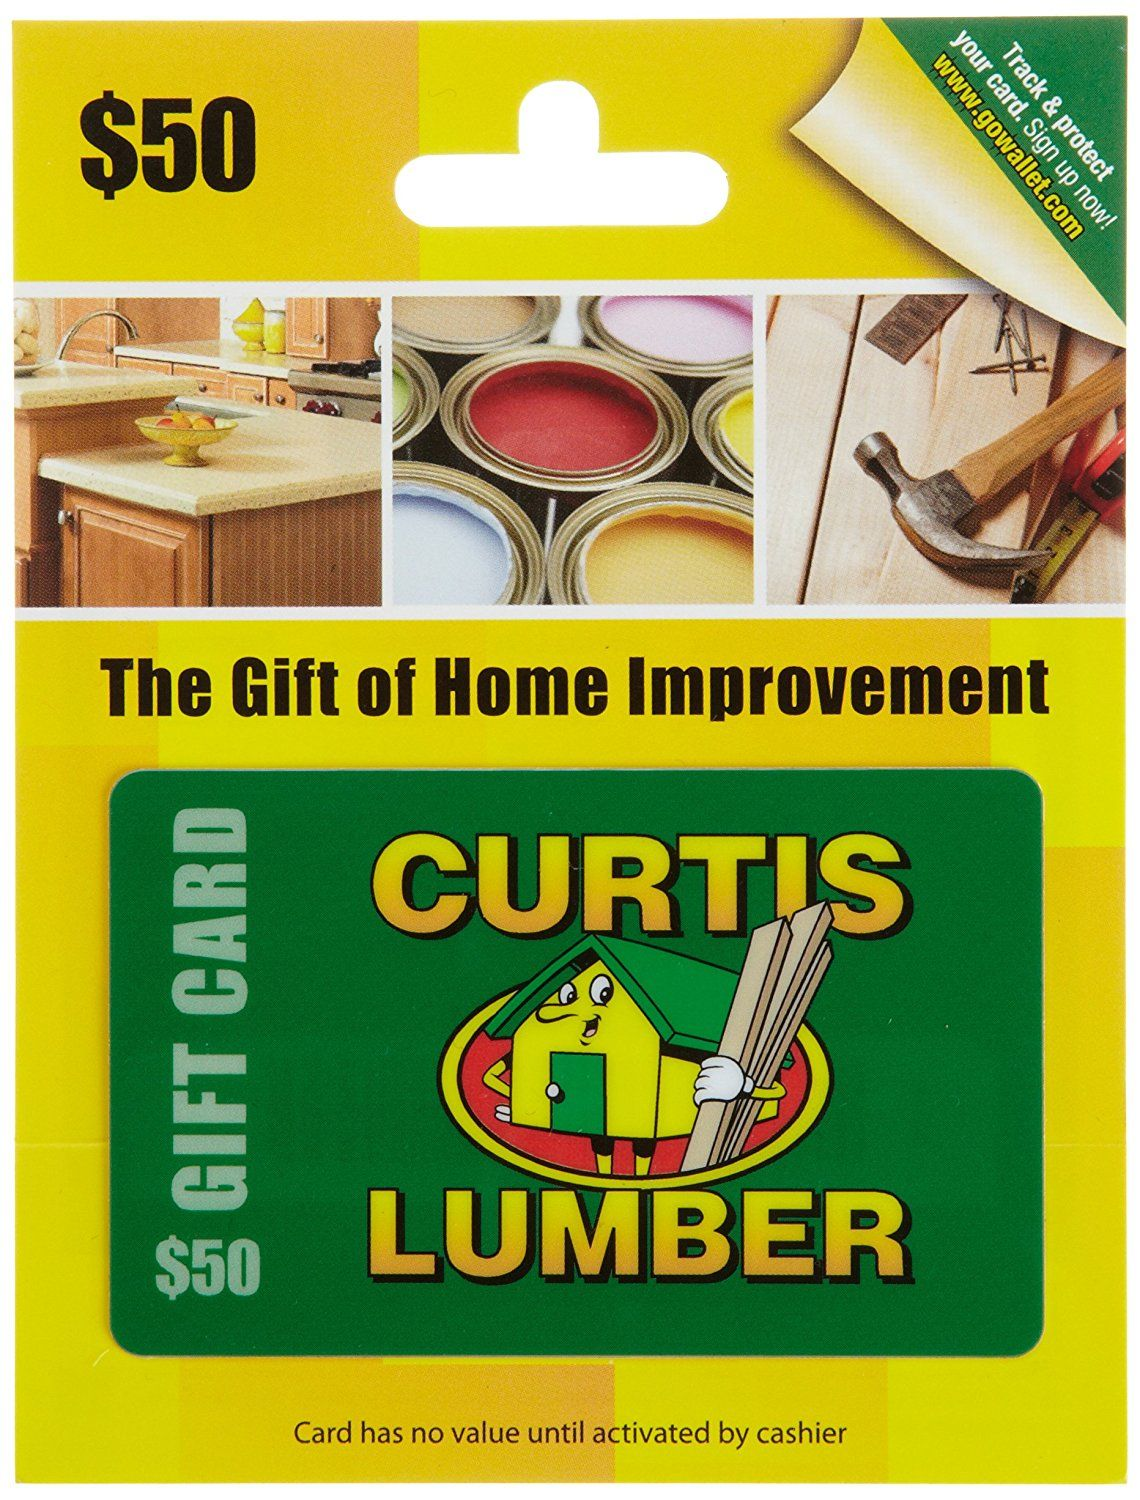 Curtis lumber gift card trust me this is great click